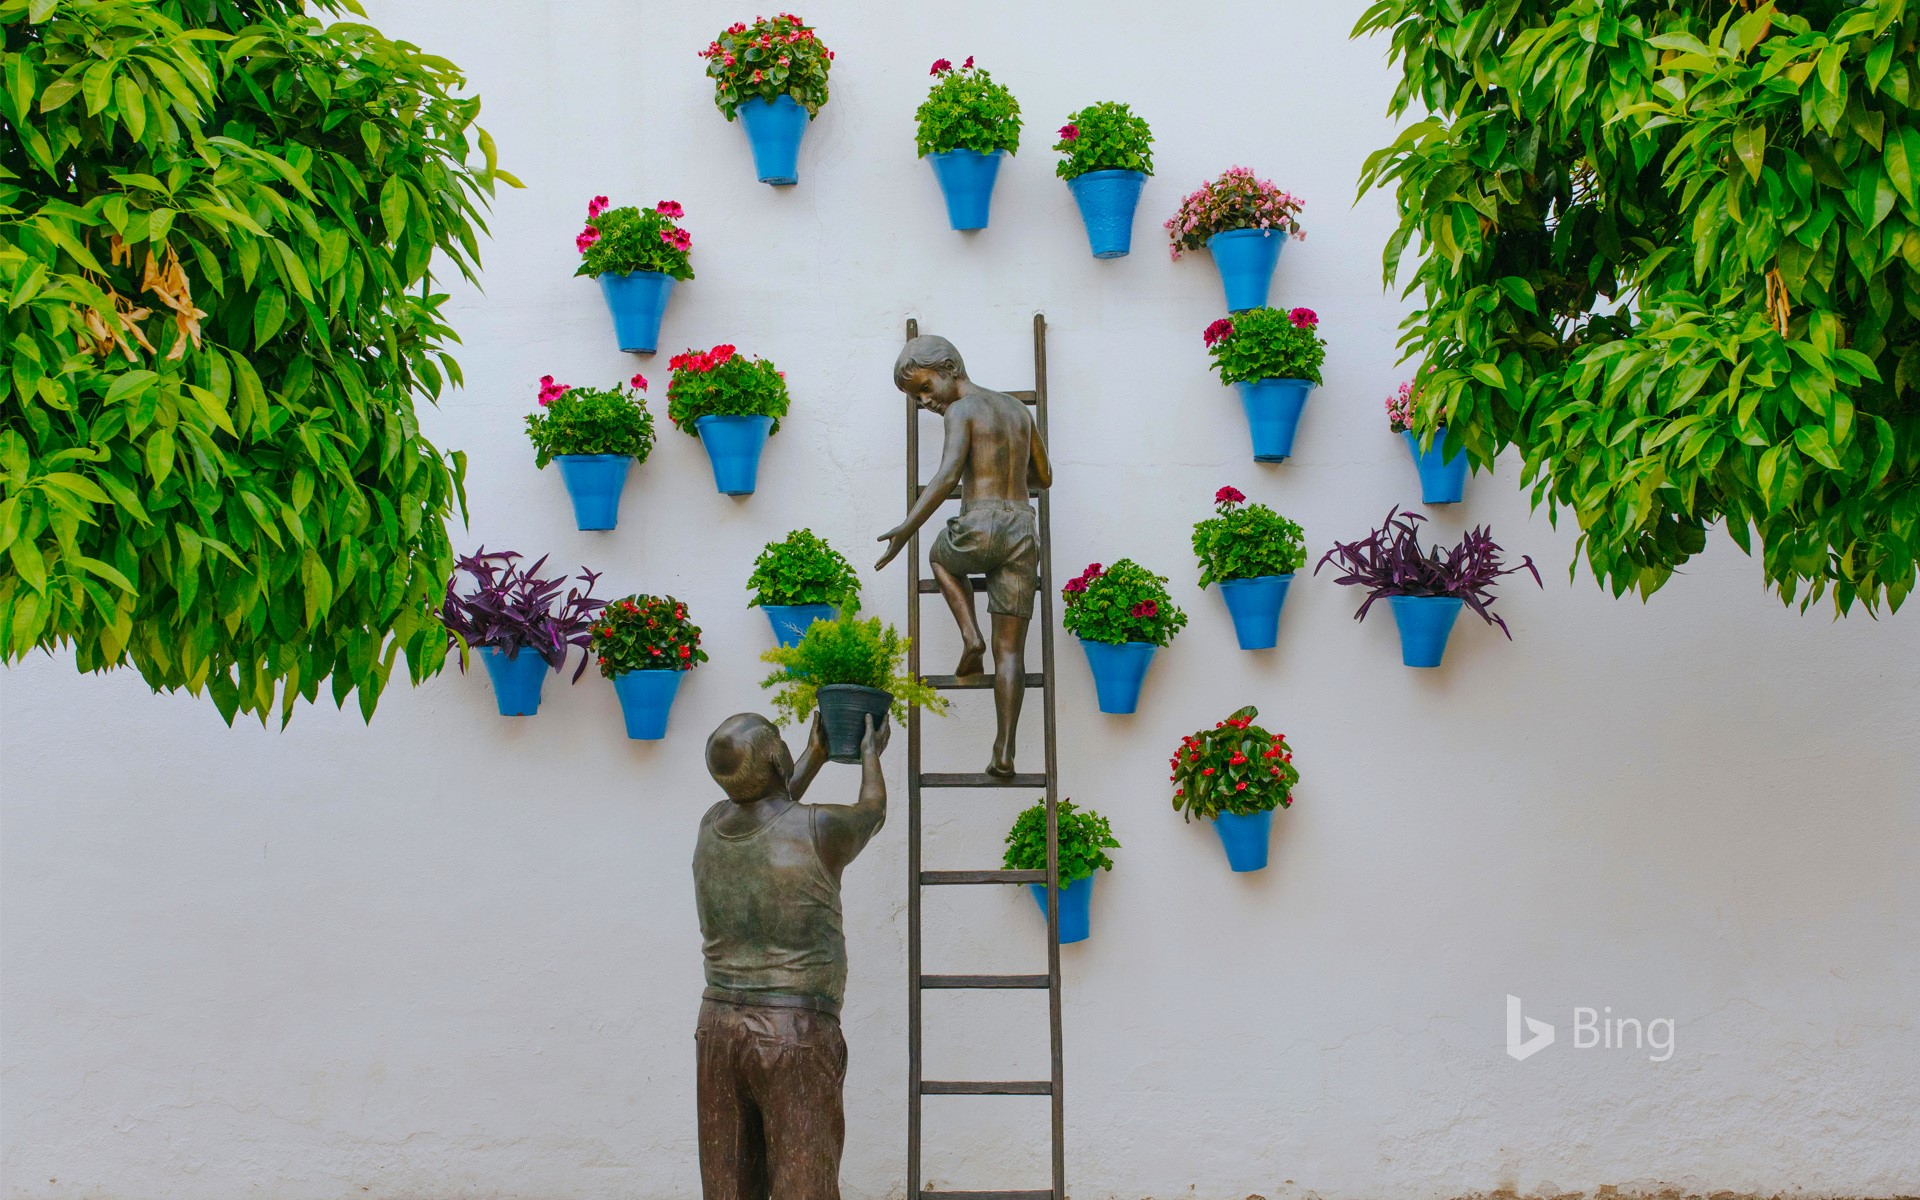 Bronze sculpture of a child and his grandfather caring for plants and flowers in the San Basilio neighborhood of Córdoba, Spain